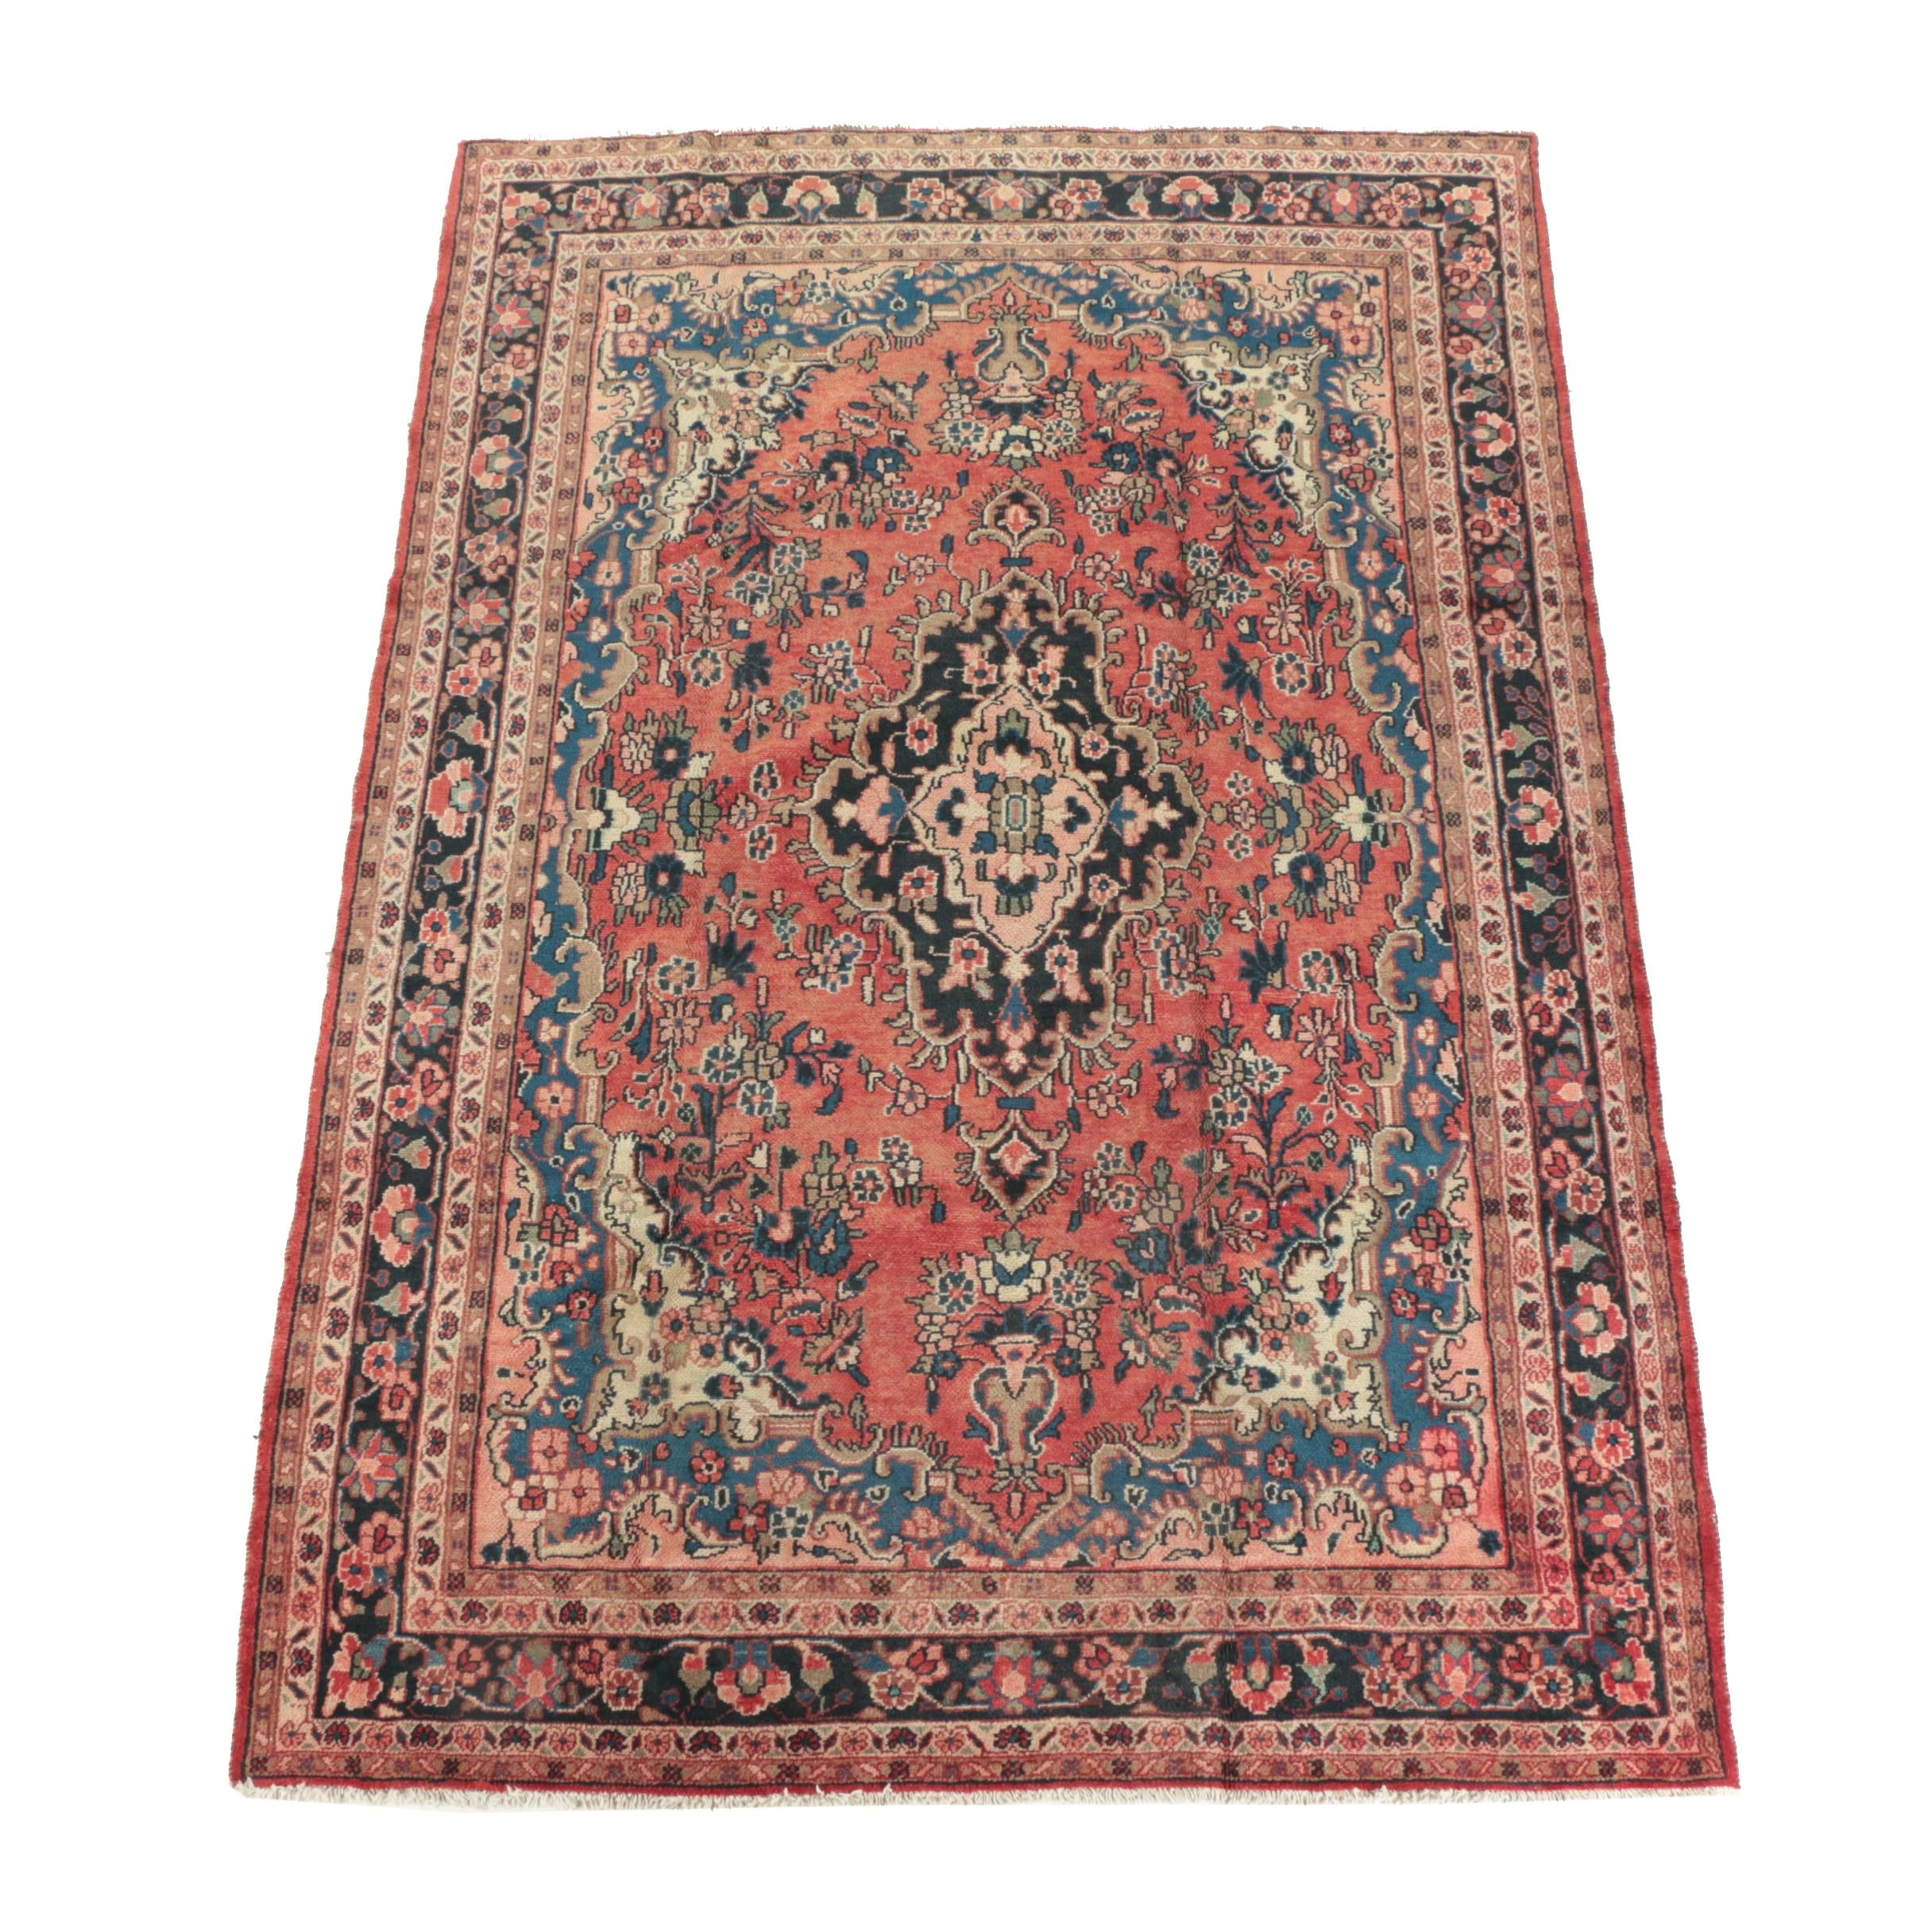 Hand-Knotted Persian Wool Area Rug